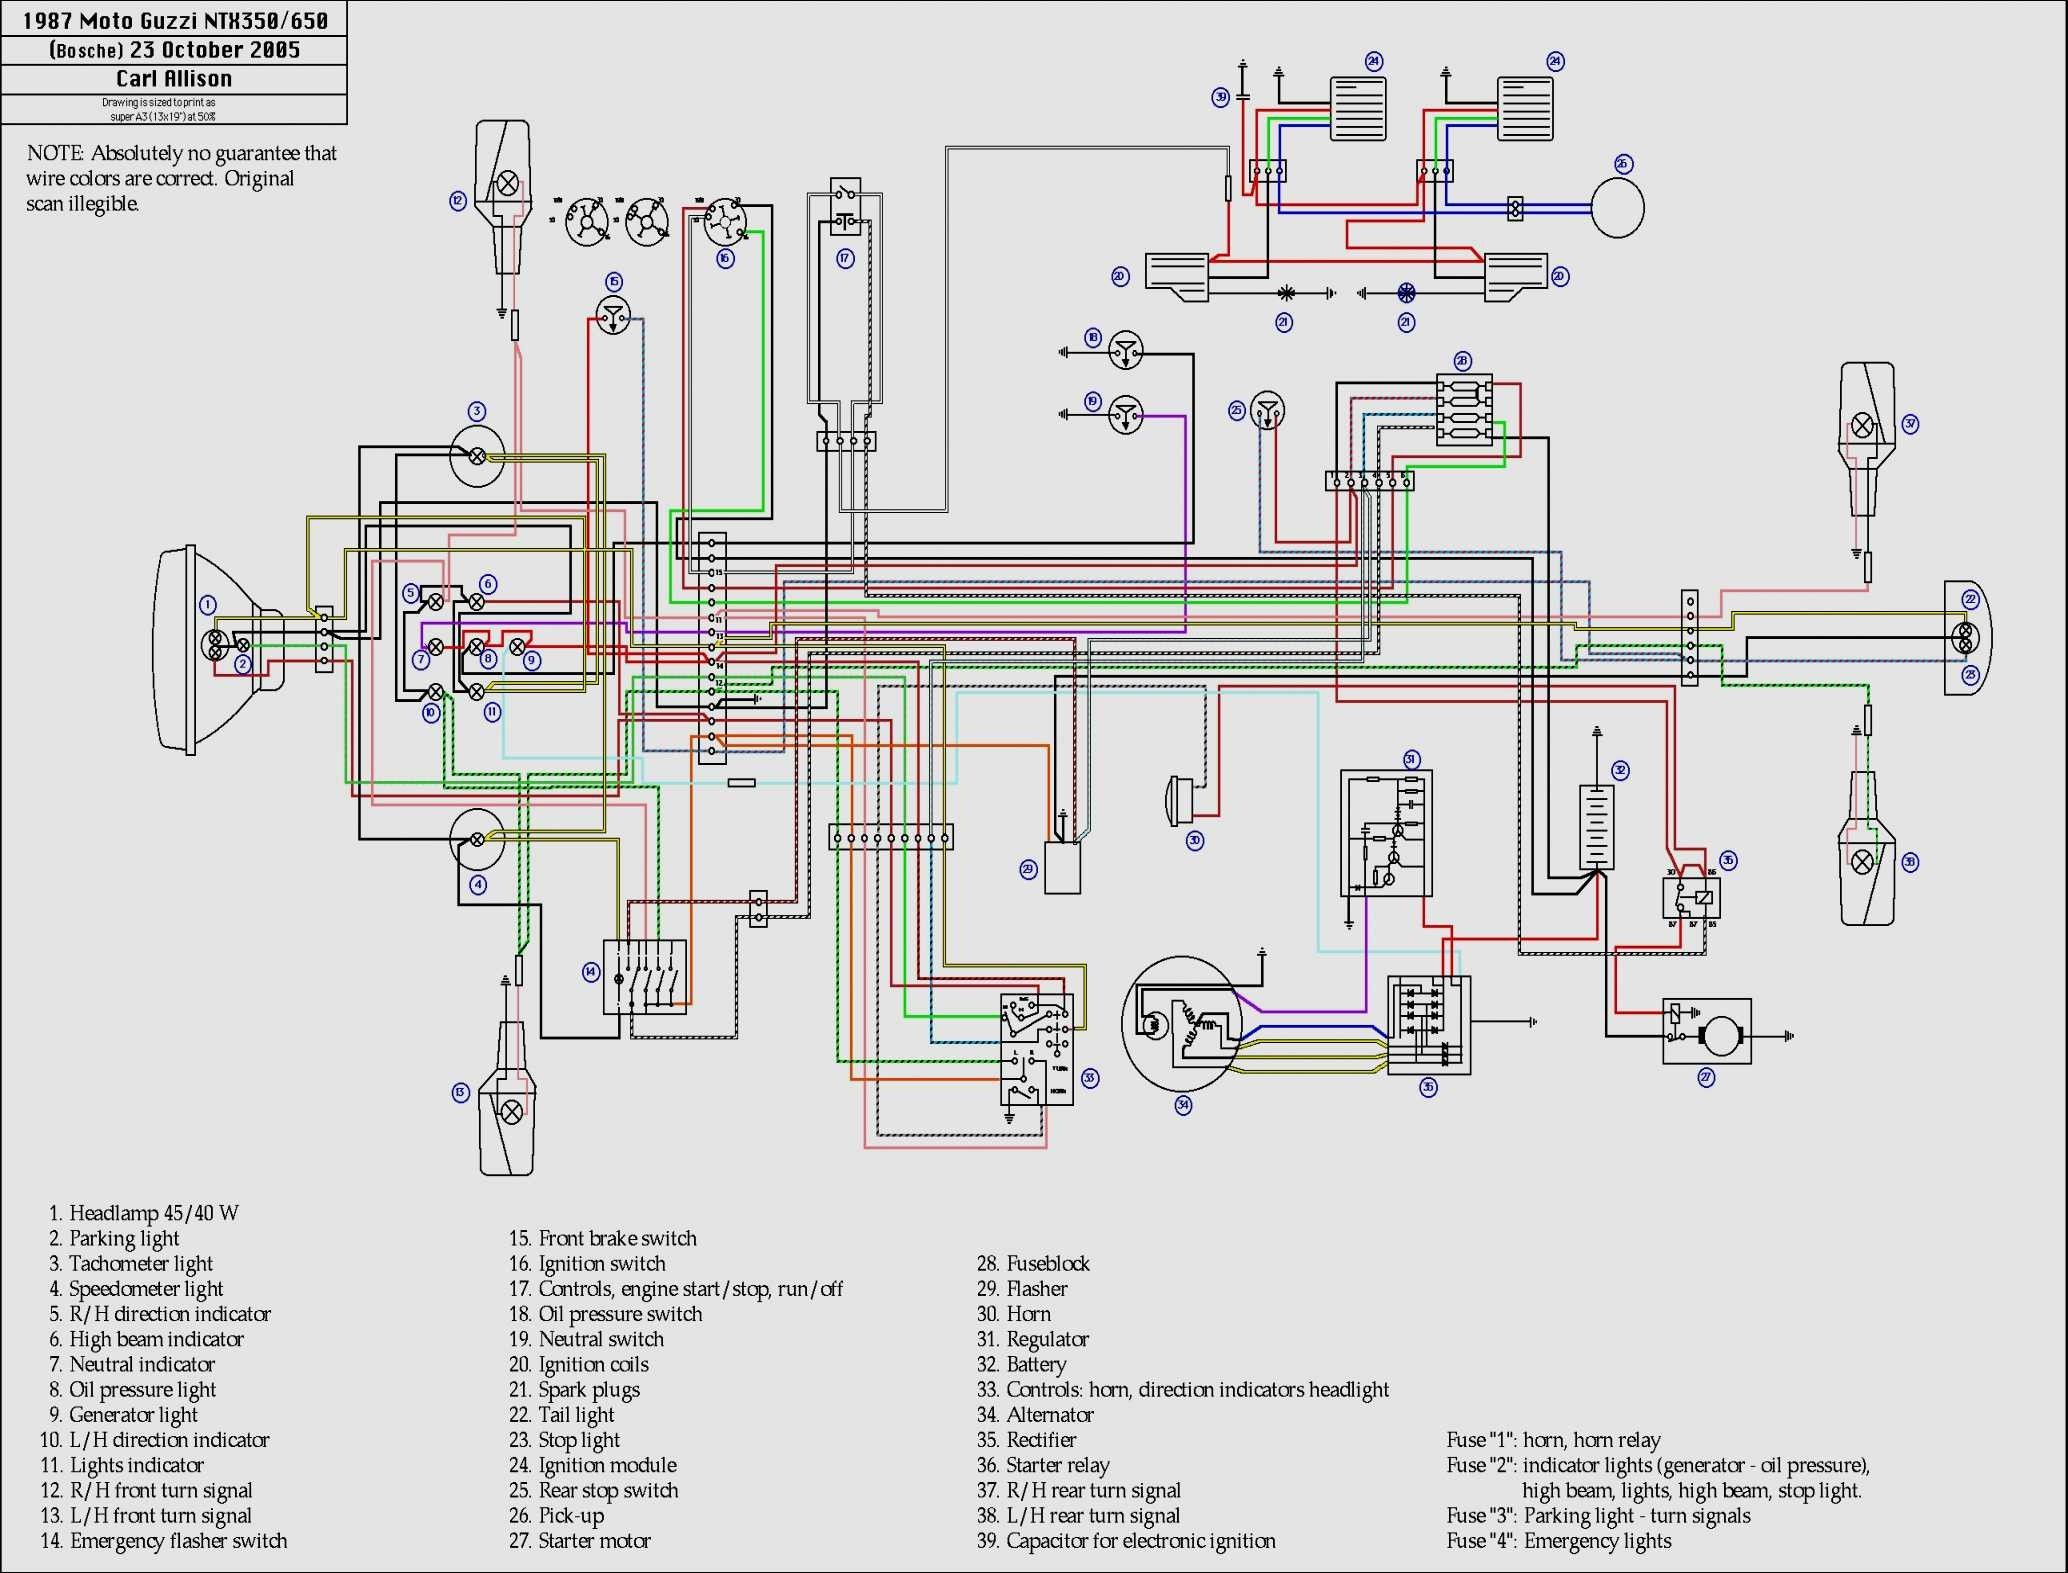 New 1998 Jeep Cherokee Headlight Wiring Diagram ...